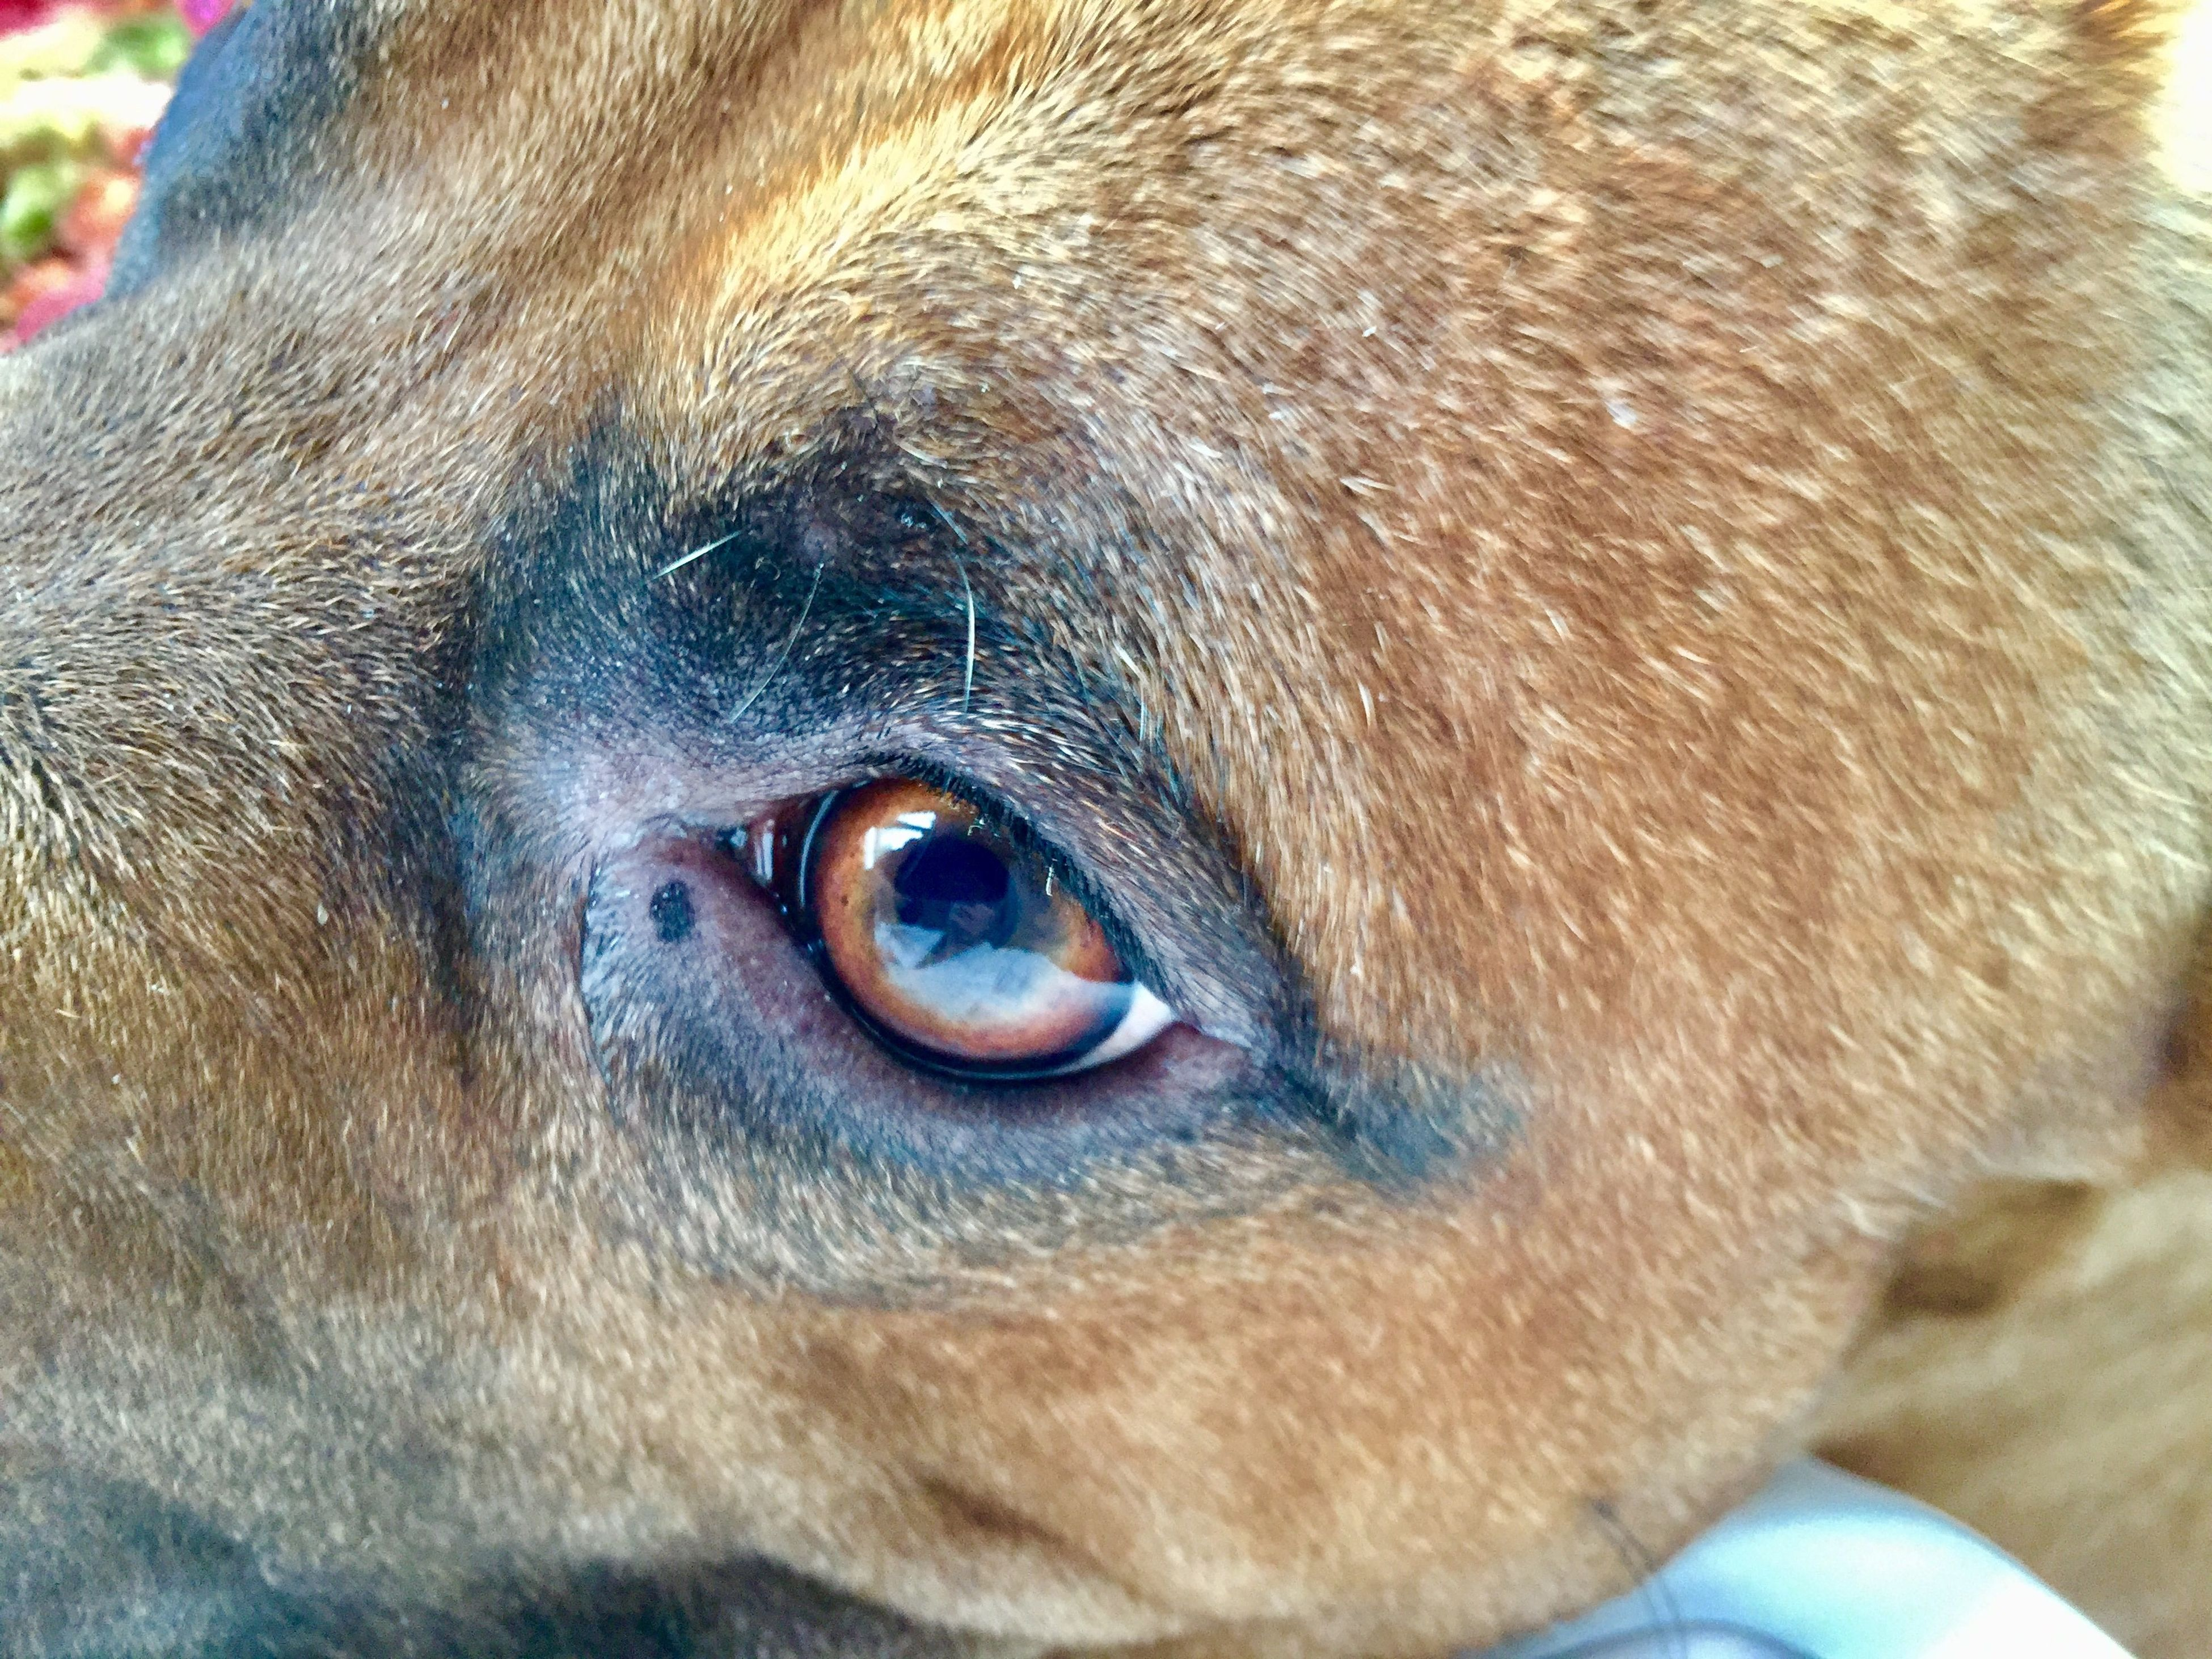 one animal, animal themes, close-up, animal head, outdoors, mammal, day, dog, portrait, animals in the wild, domestic animals, no people, pets, nature, eyeball